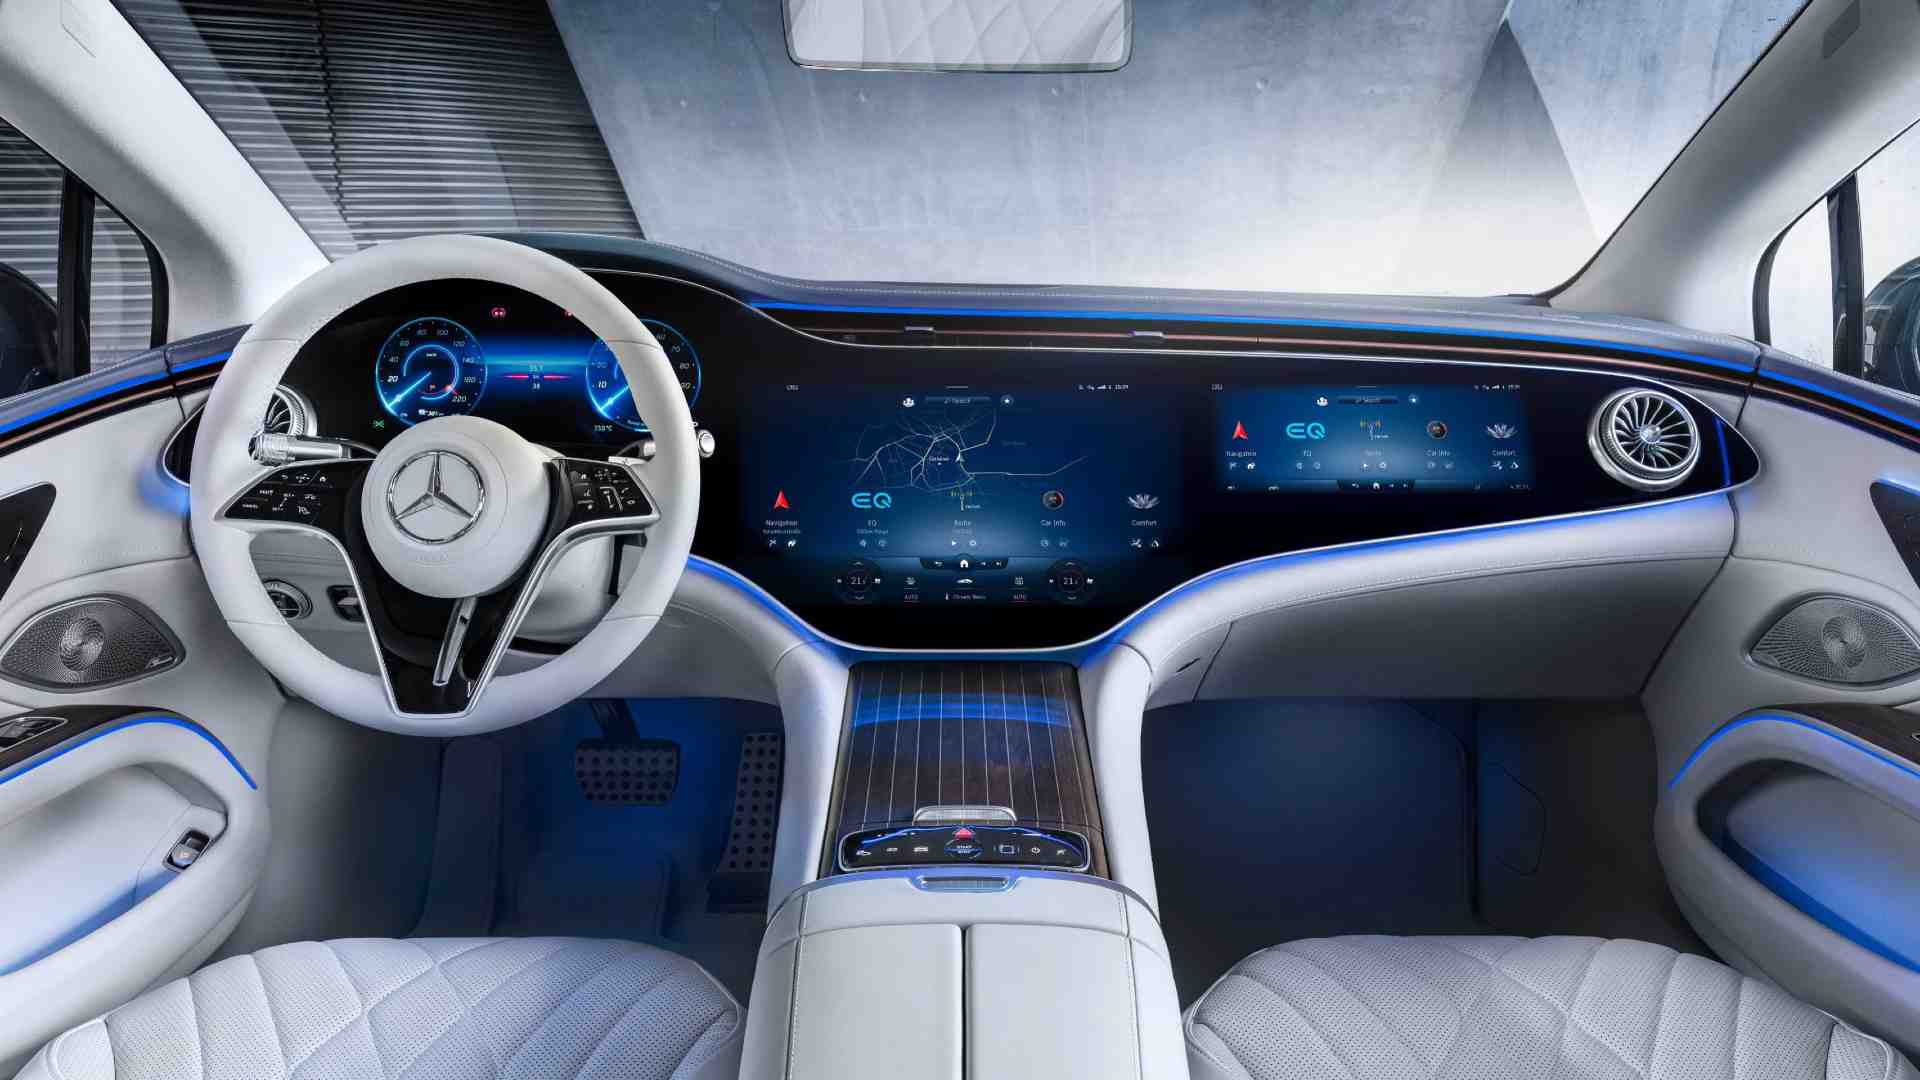 The Mercedes-Benz EQS debuts the MBUX Hyperscreen with three digital displays installed under a curved glass panel. Image: Mercedes-Benz